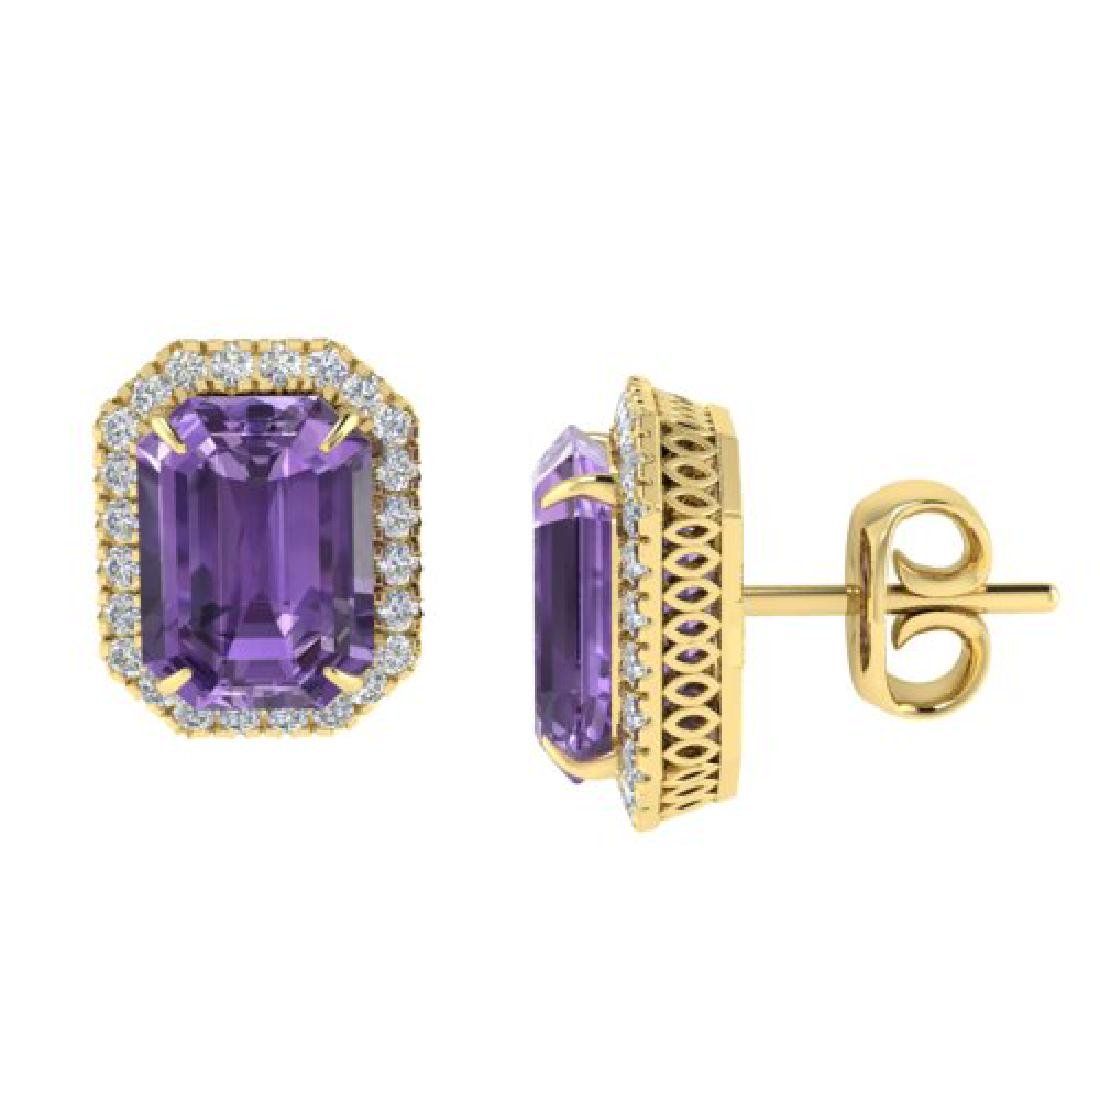 9.40 CTW Amethyst & Micro Pave VS/SI Diamond Halo - 2